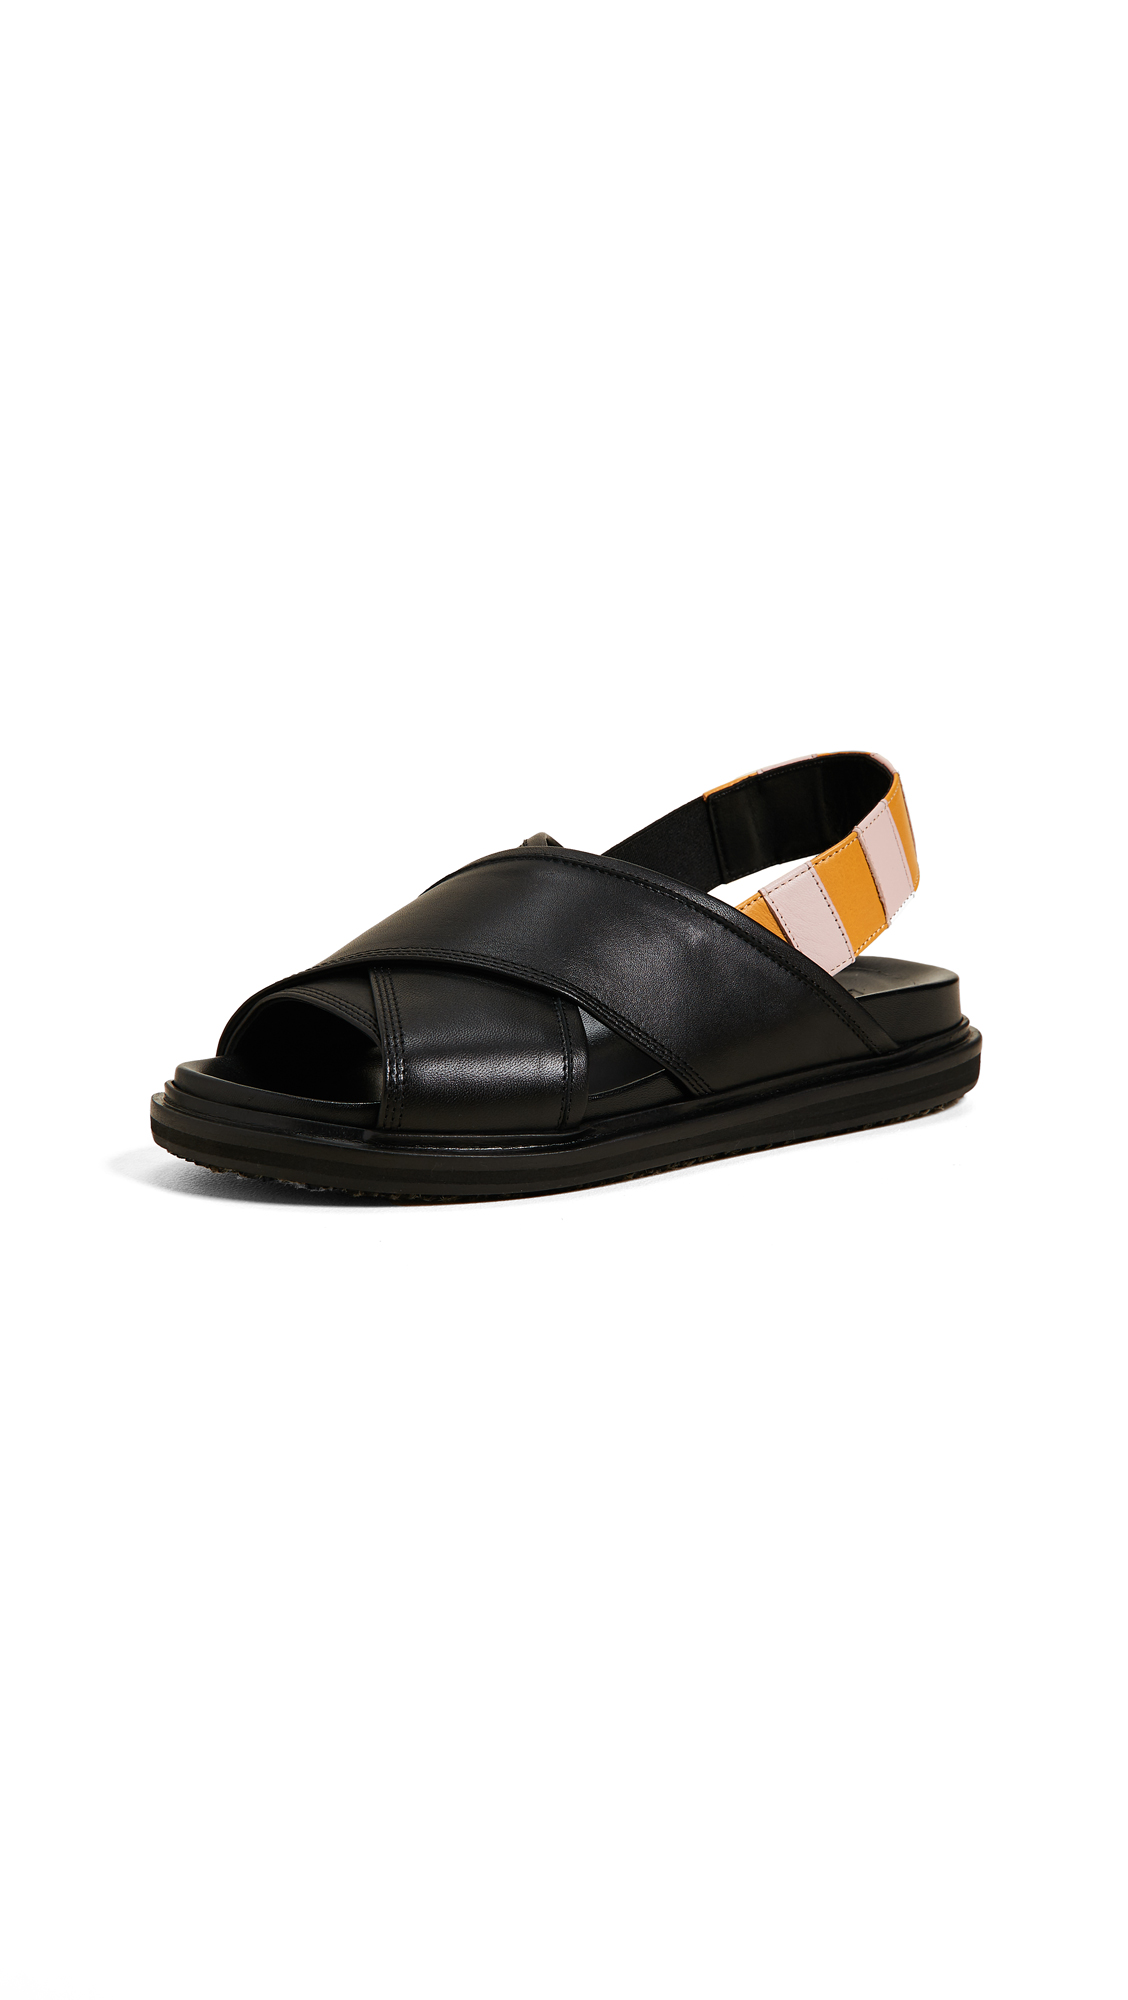 Marni Fussbett Sandals - Black/Quartz/Saffron